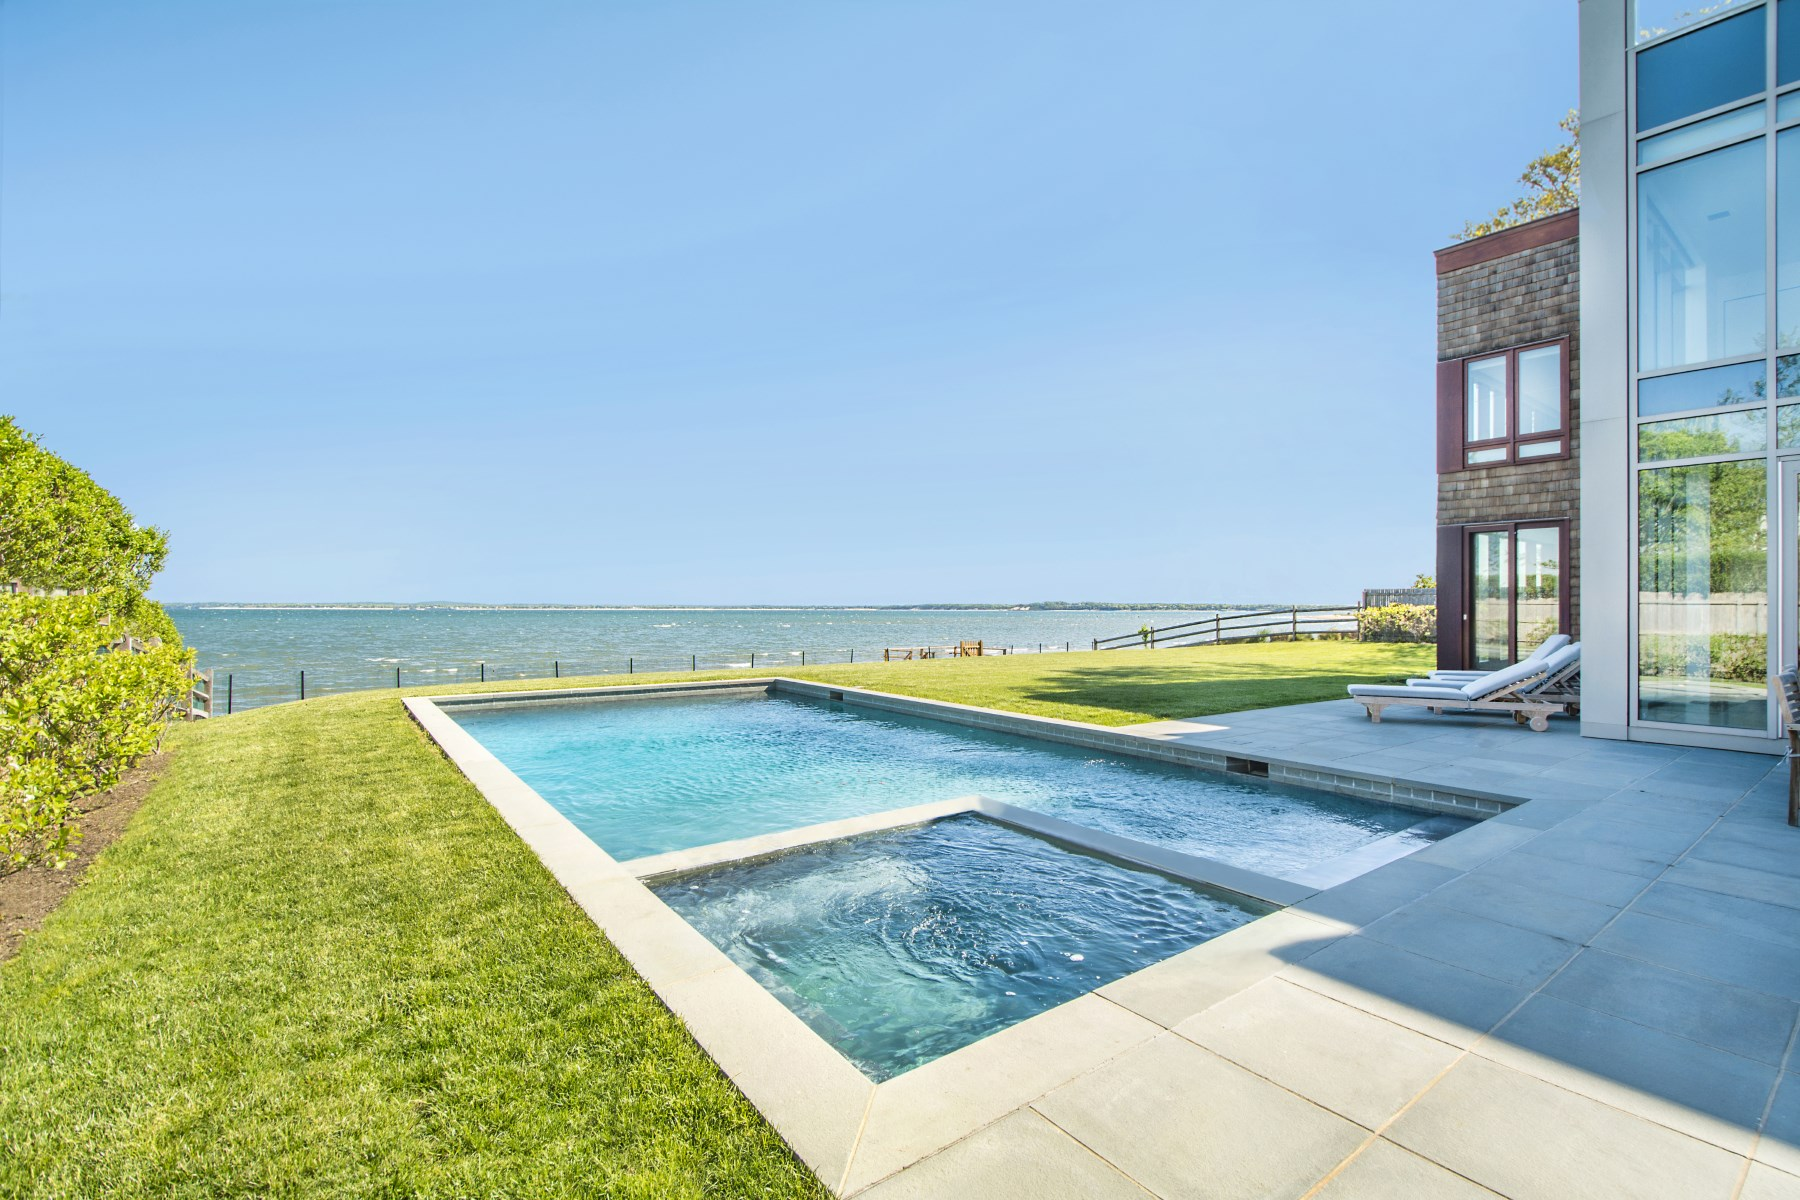 Single Family Home for Active at Sag Harbor Spectacular Waterfront 43 Noyack Bay Avenue Sag Harbor, New York 11963 United States